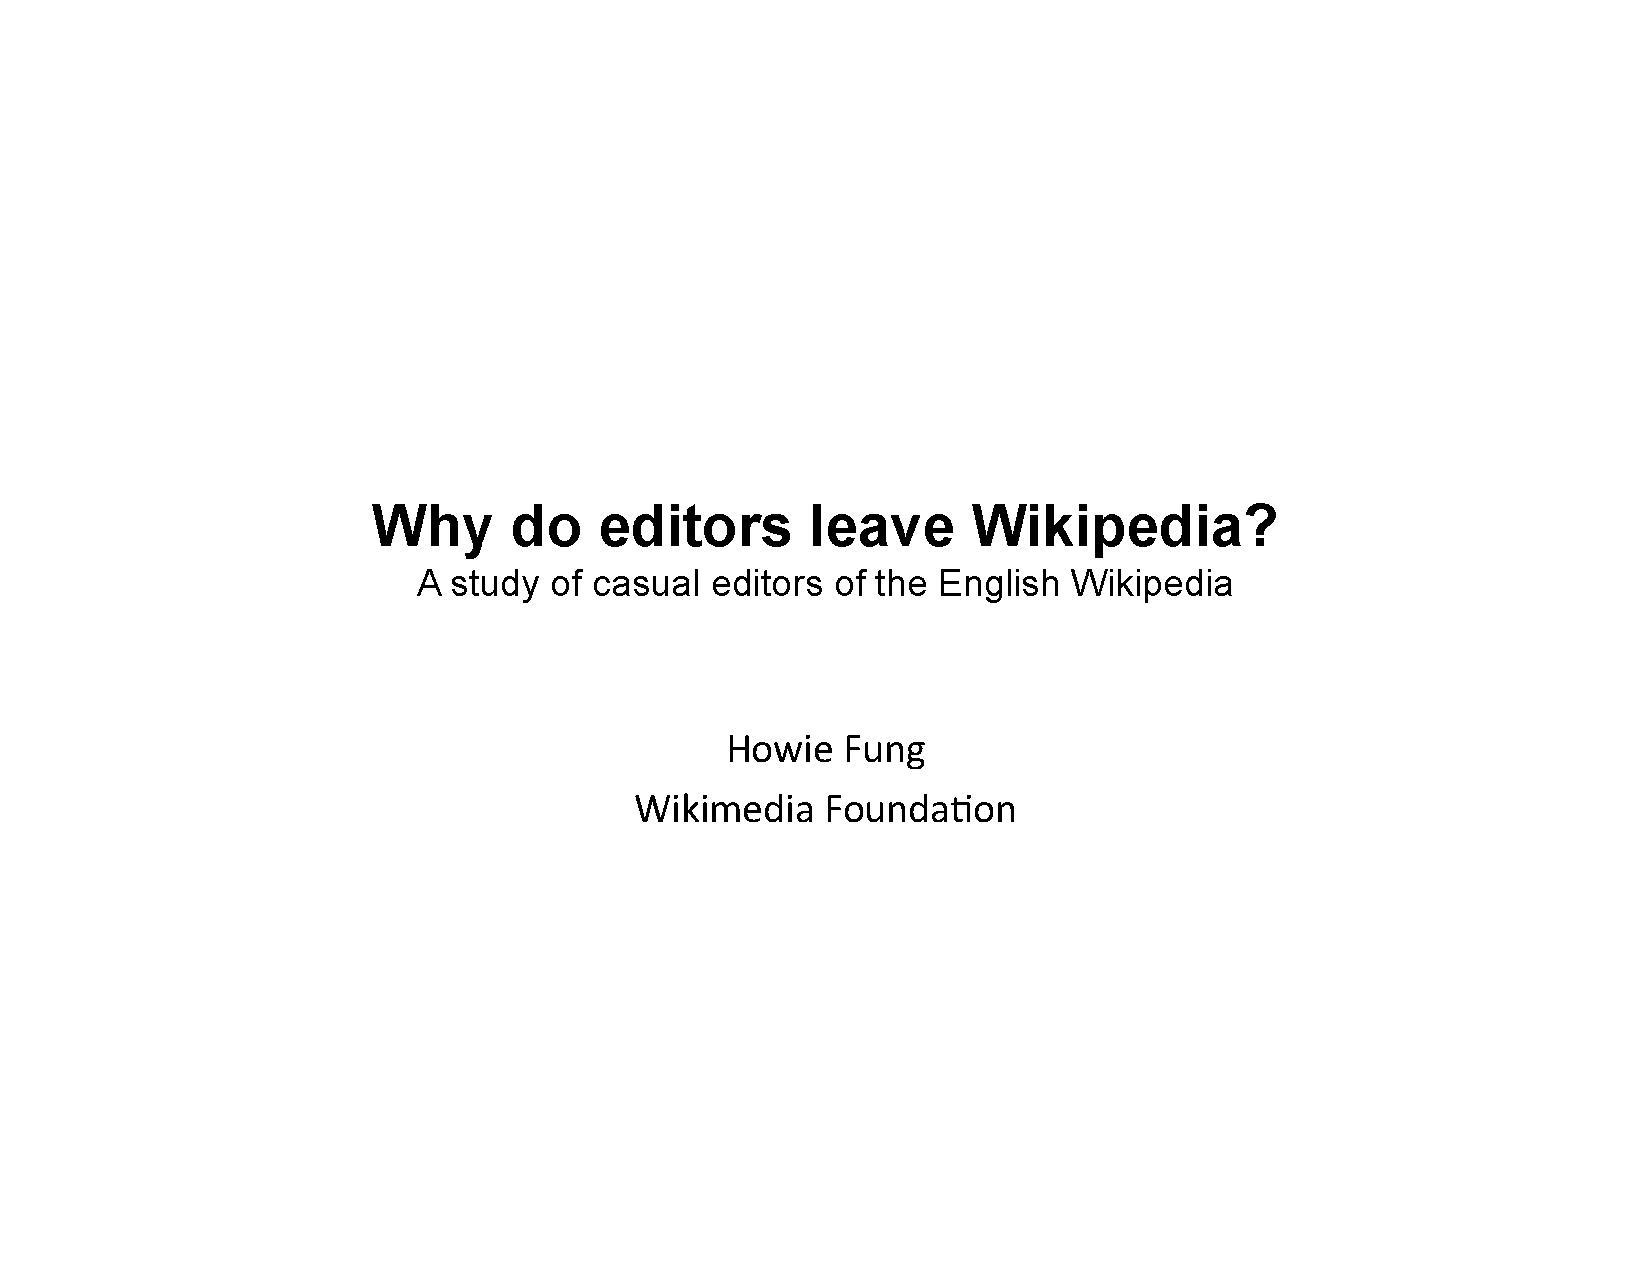 Why Do Editors Leave Wikipedia.pdf